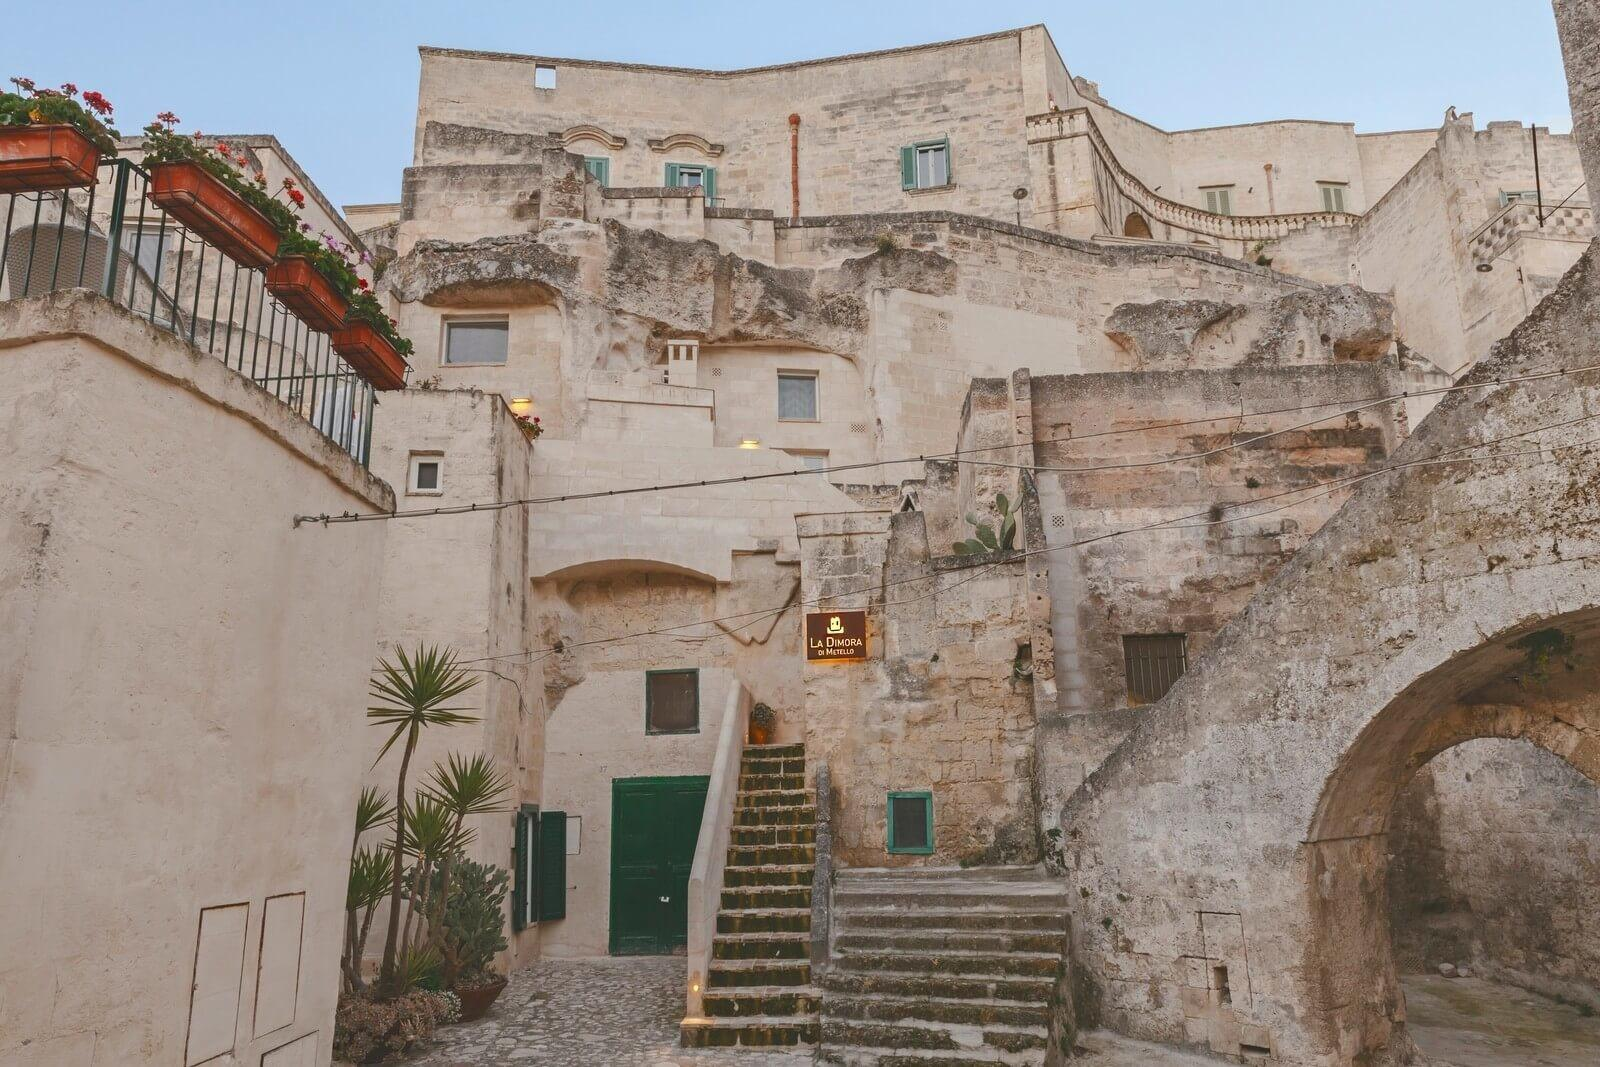 Millennia Old Italian Cave Converted Into Luxury Hotel